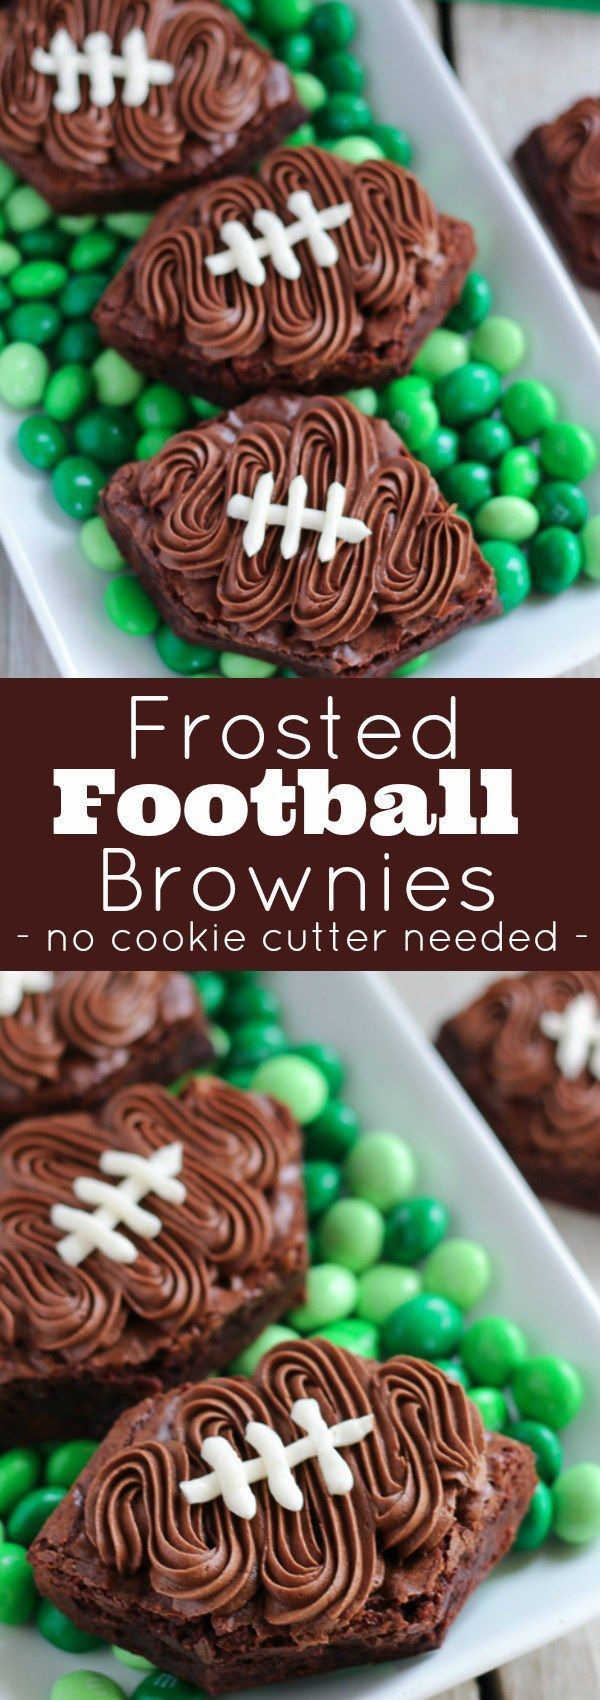 Frosted Football Brownies - Brownies frosted with chocolate and vanilla.